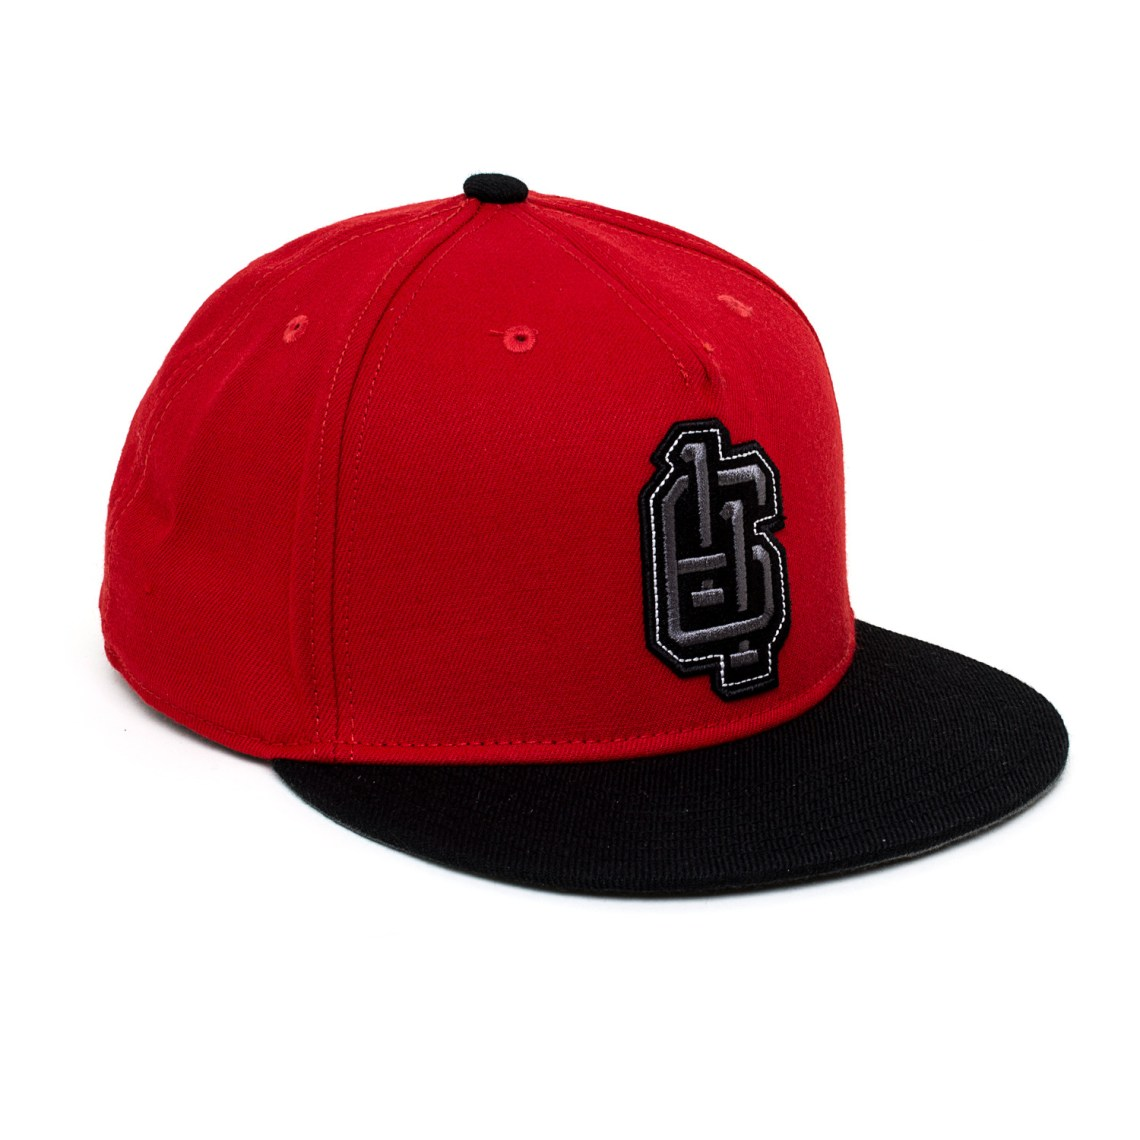 Of Our Favorite Christian Apparel Snapback Hats e3599b7e2c2